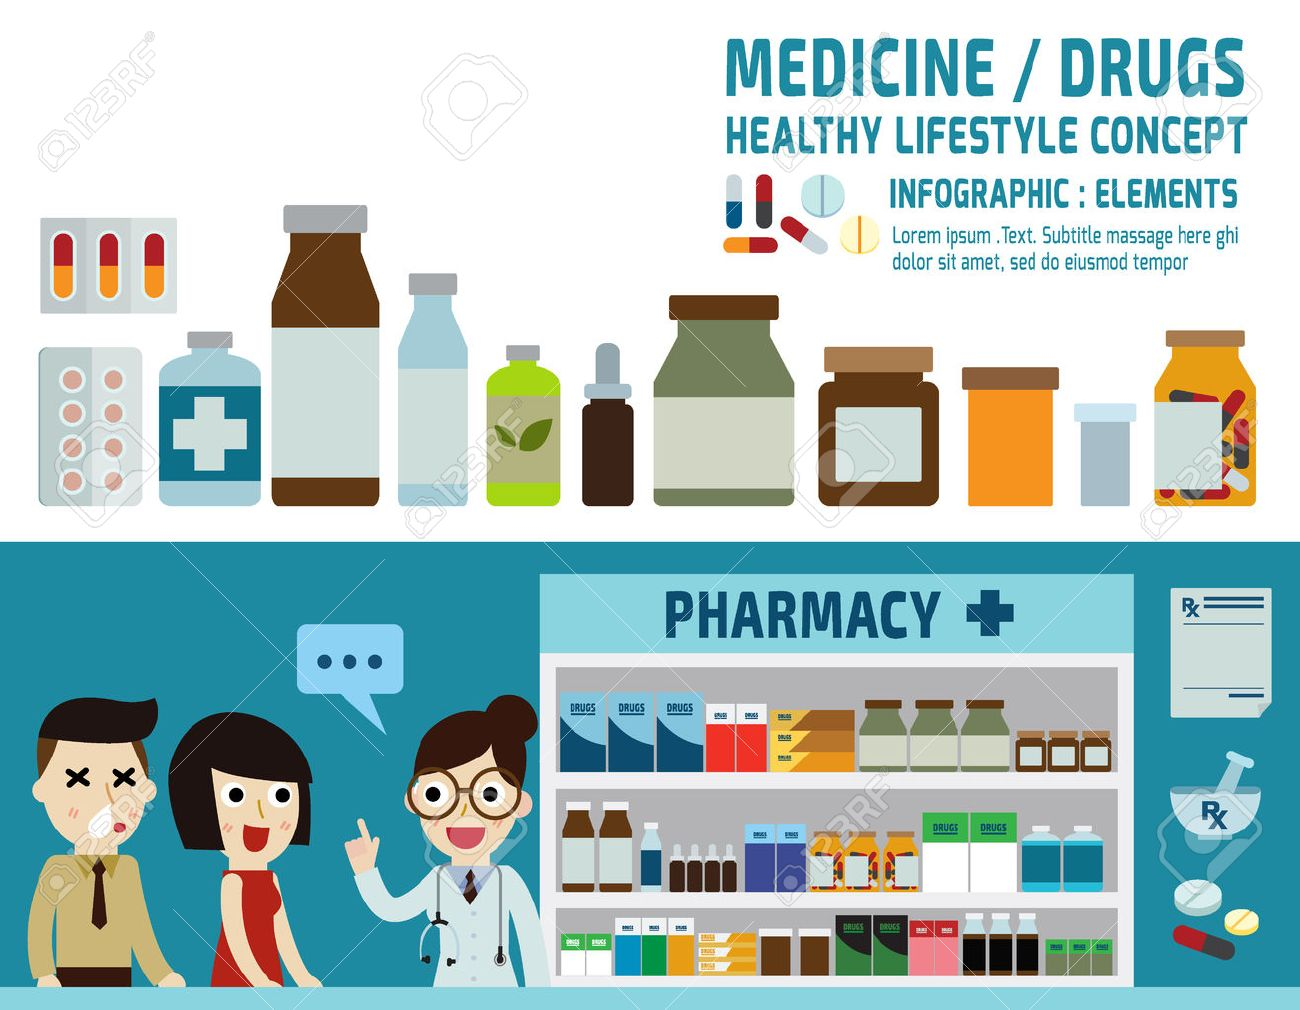 drugs icons: pills capsules and prescription bottles.pharmacy drugstore.infographic elements.wellness concept.banner header blue for website and magazine.illustration isolated on white background. - 52523086